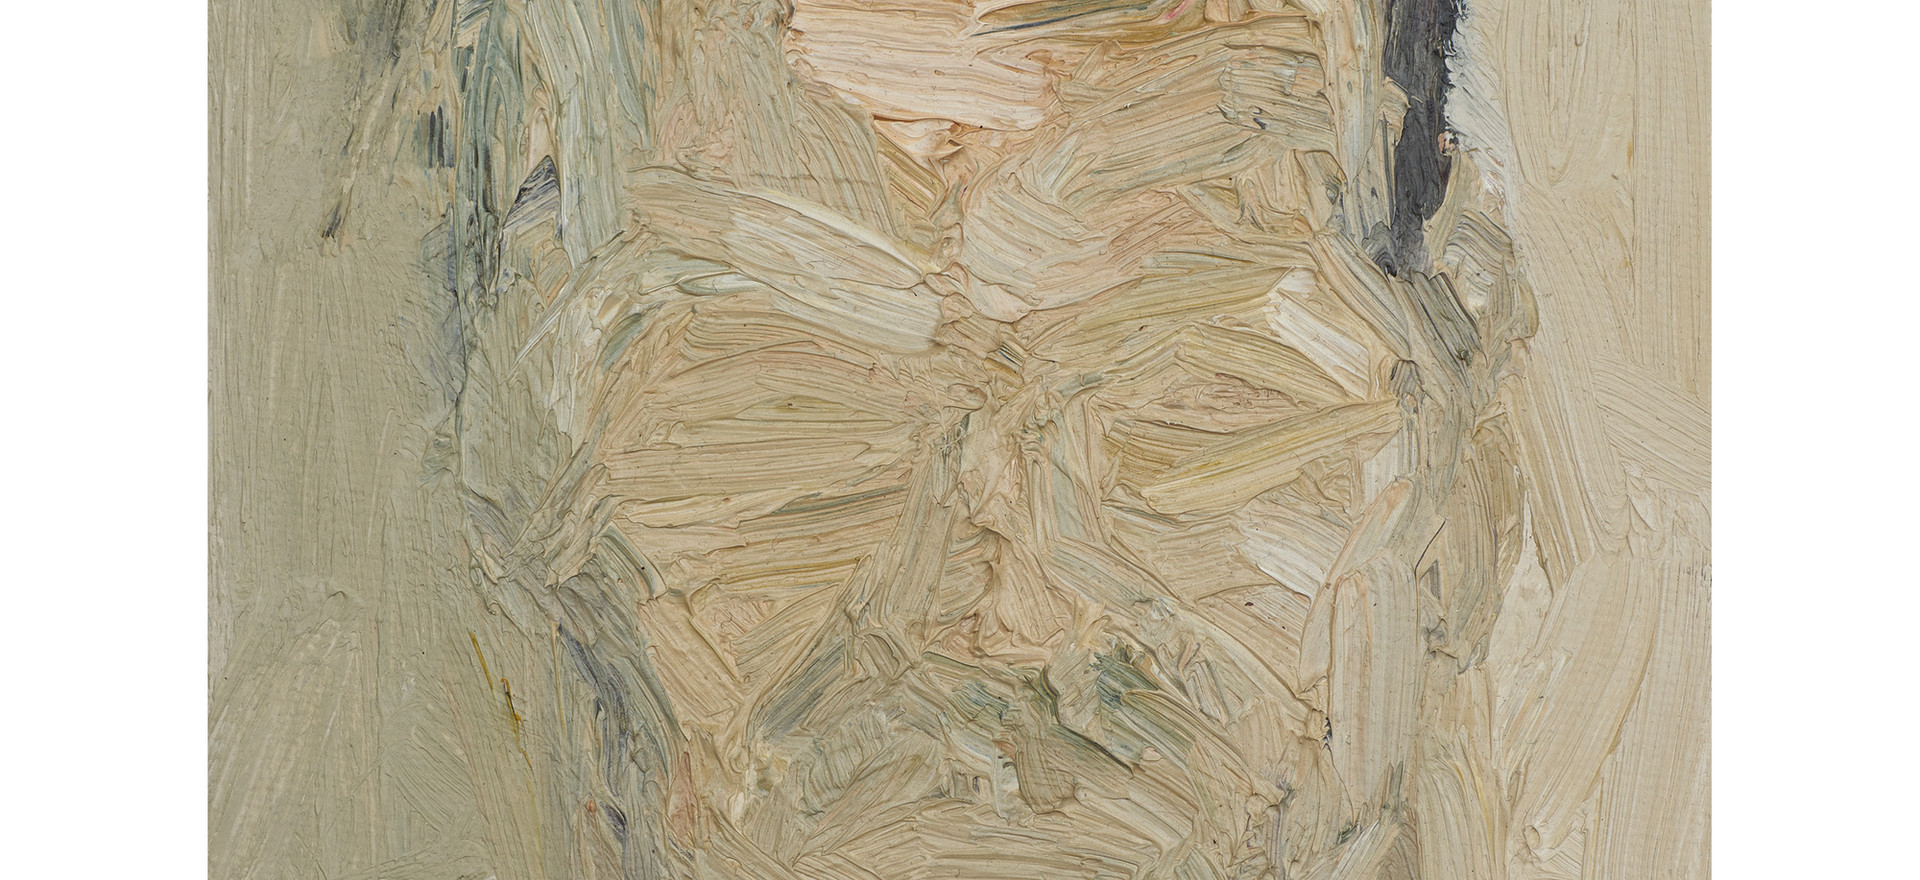 'R.K.' 2011, oil on canvas, 18 x 13 cm